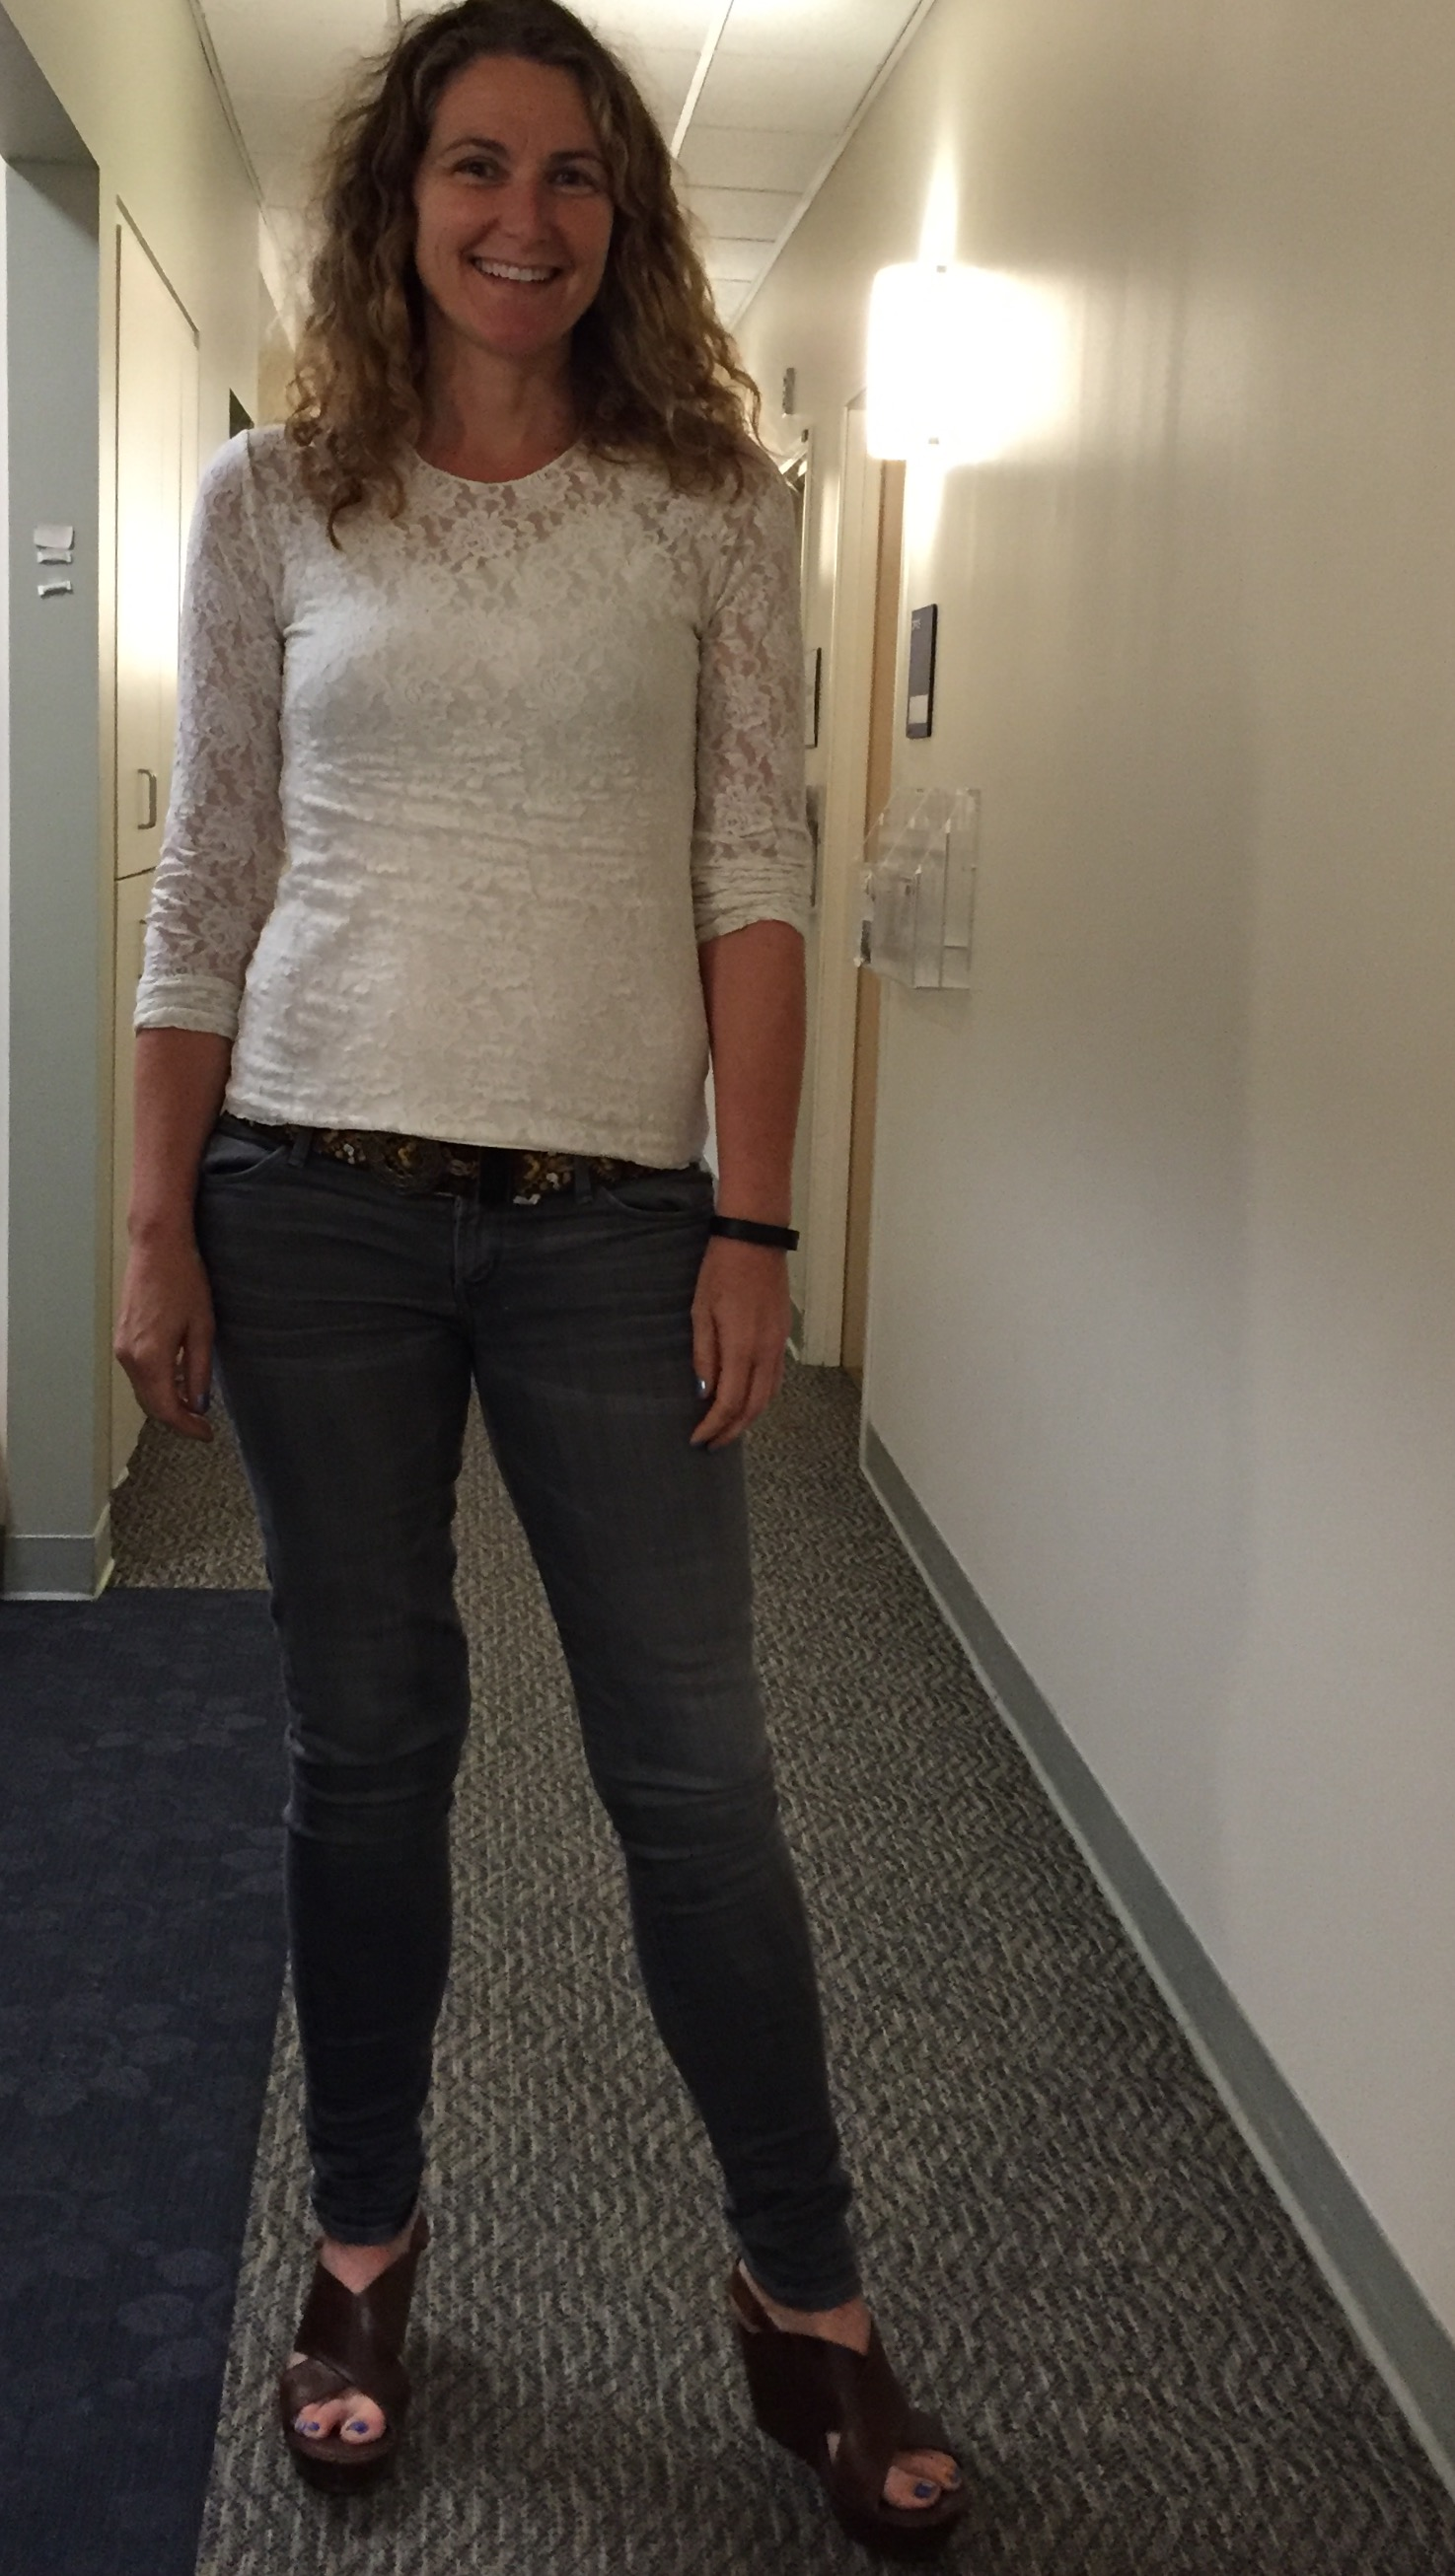 Women's Clothing Clothing, Shoes & Accessories Obedient Womens Jeans Size 18 Blue Jeans Cheryl Tiegs